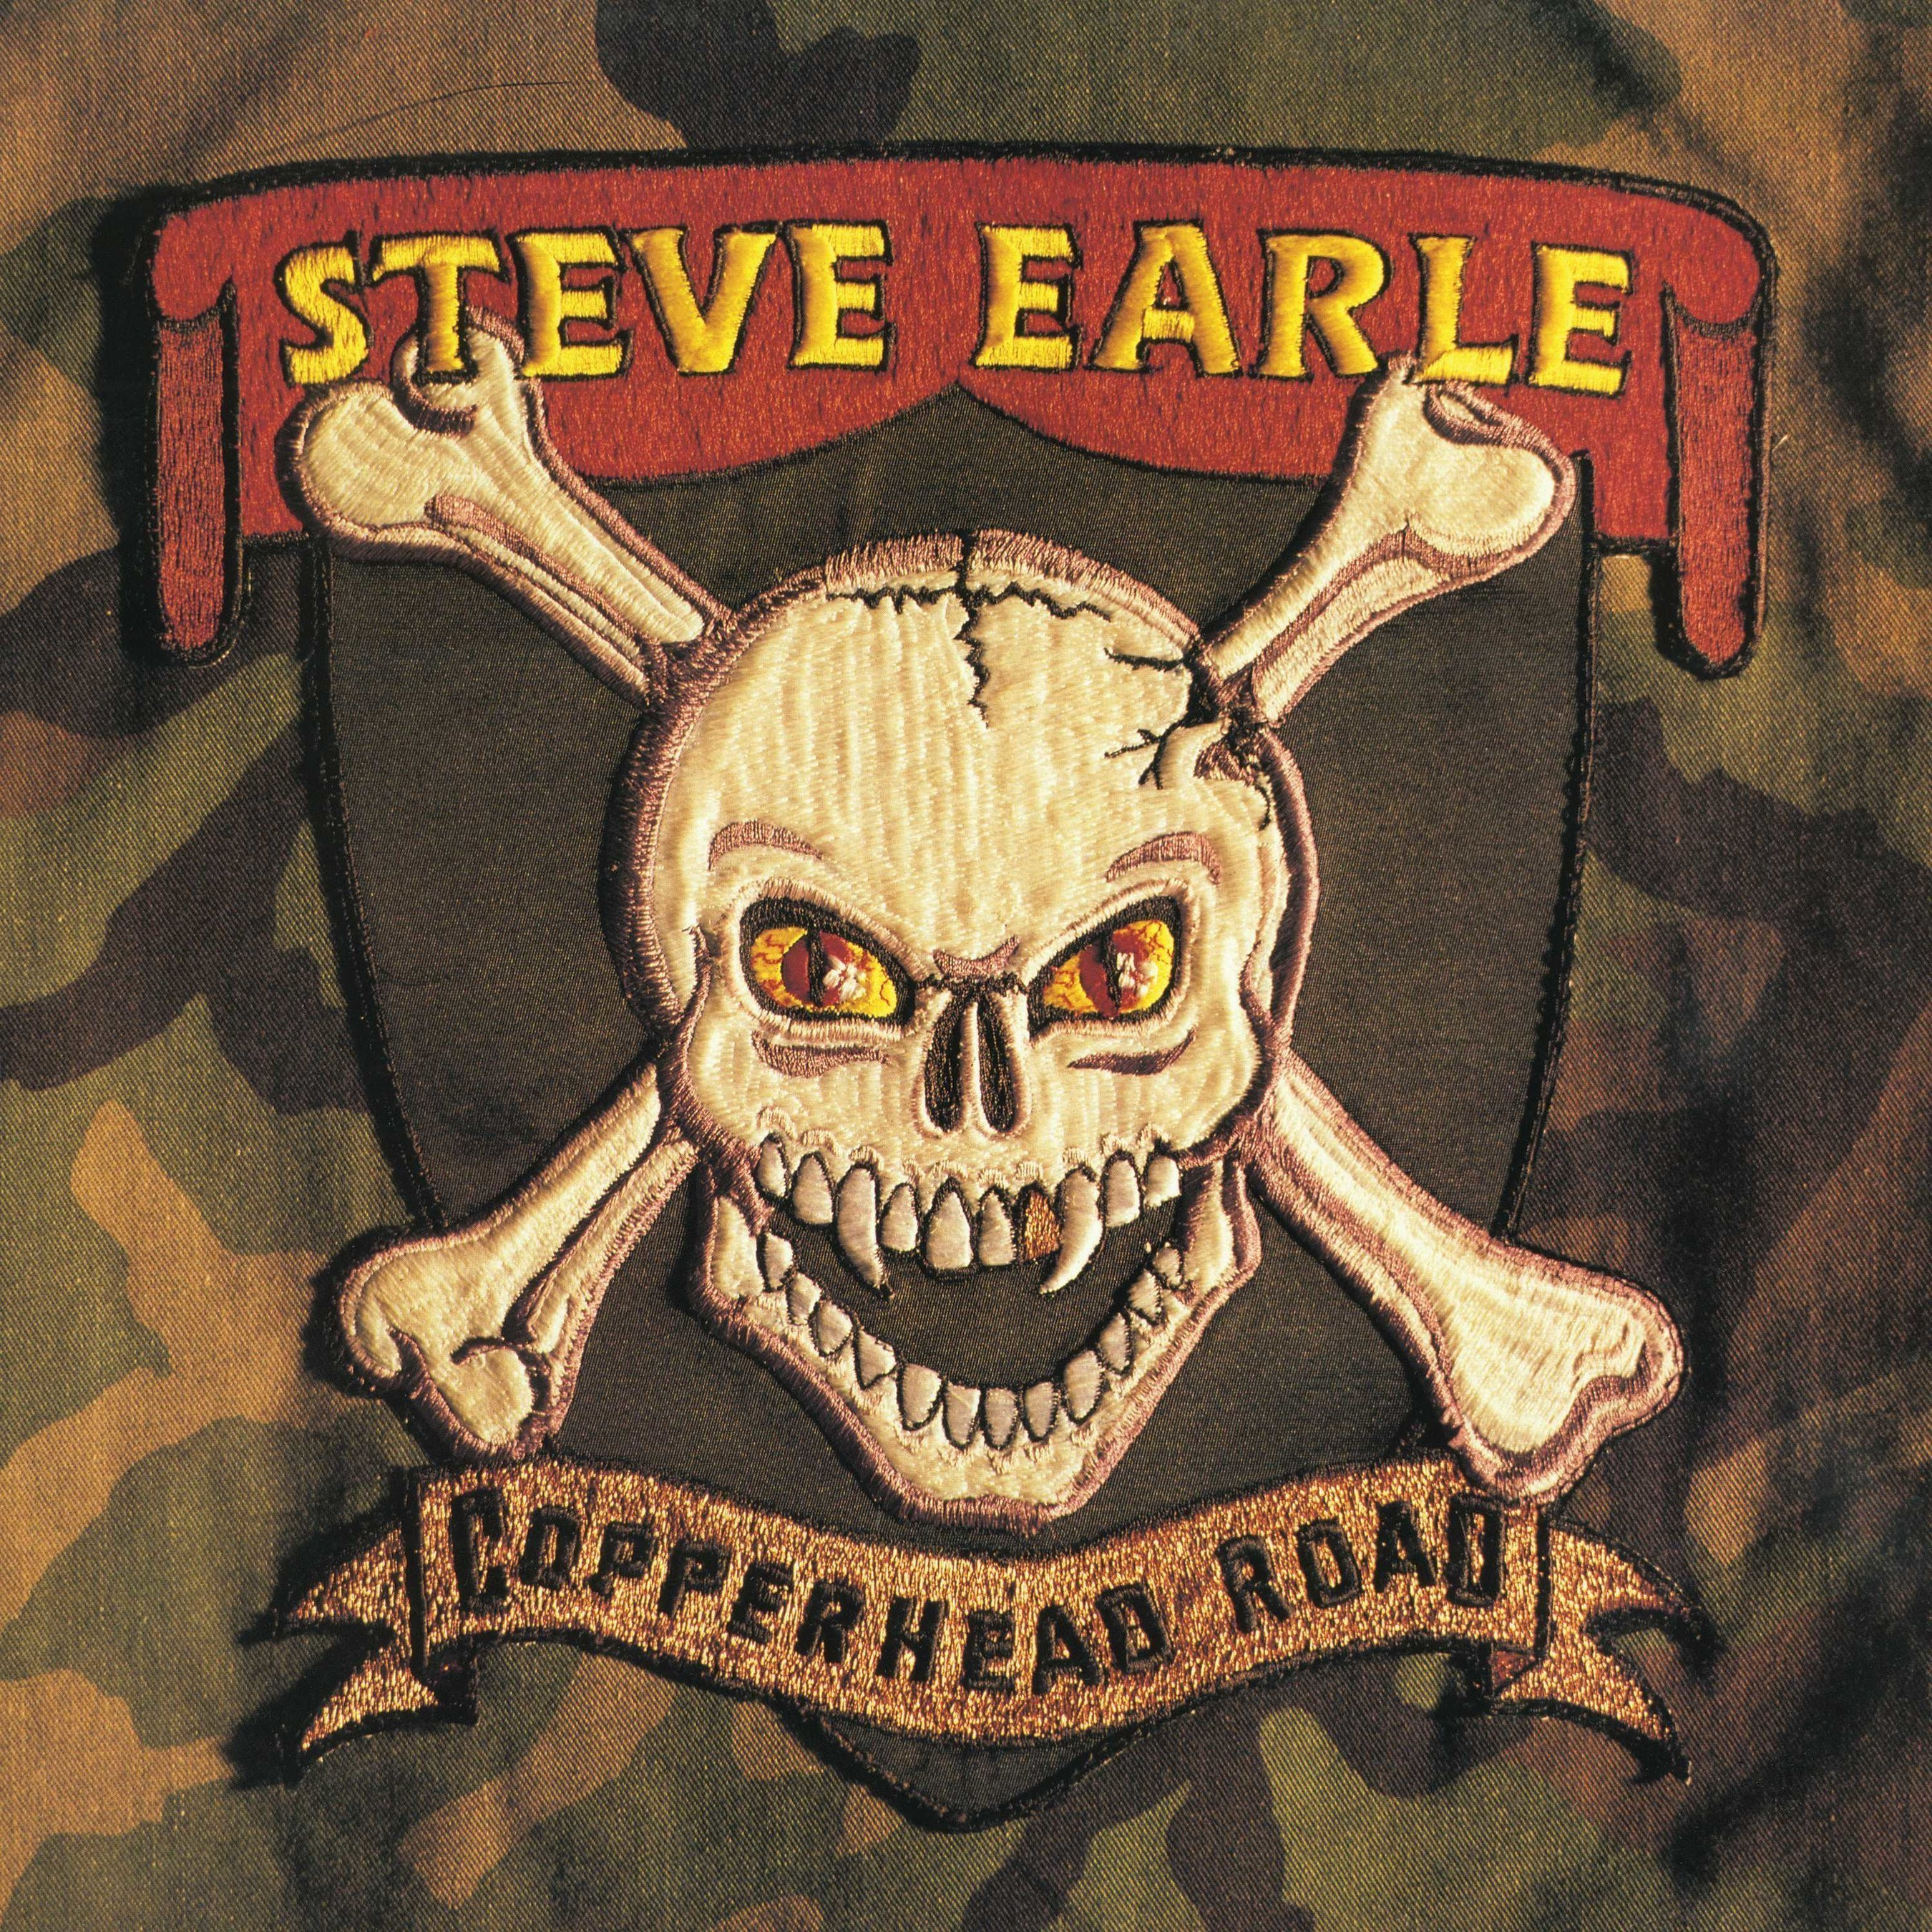 Steve Earle's four MCA Records studio albums, 'Guitar Town,' 'Exit 0,' 'Copperhead Road,' and 'The Hard Way,' have been remastered from the original tapes by Robert Vosgien and cut for vinyl by Ron McMaster at Capitol Mastering for LP release on May 6. An expanded 30th Anniversary Edition of 'Guitar Town' will be released this fall in 2CD and digital audio packages. Details will be announced.